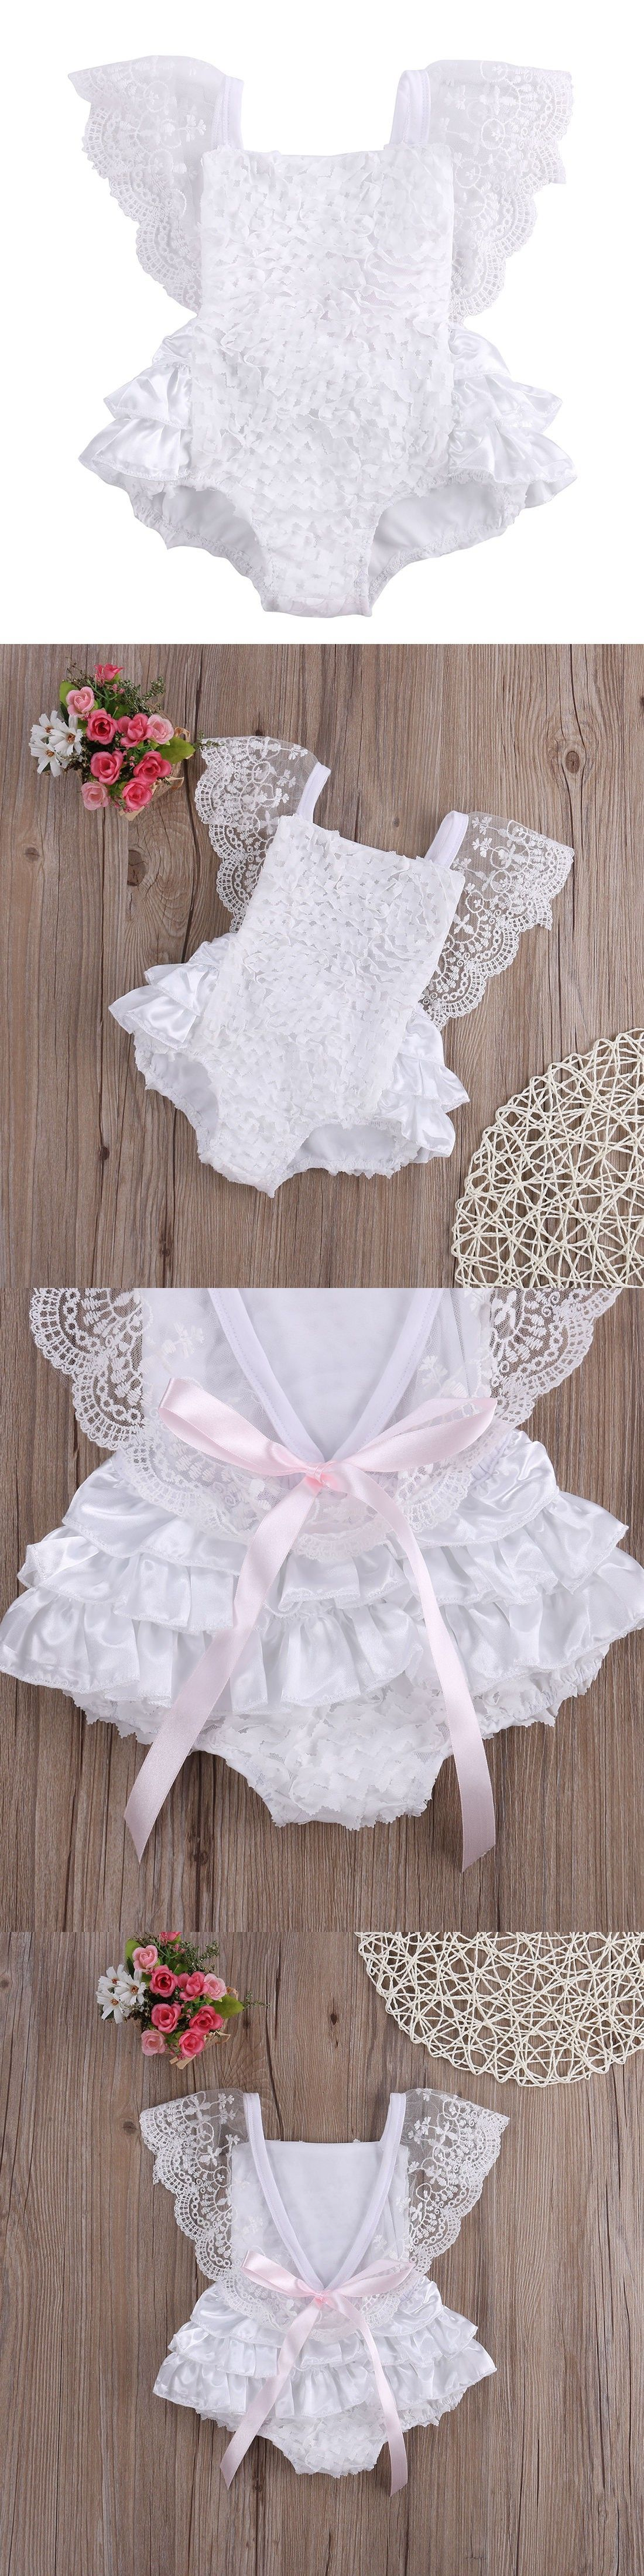 Tirred Cotton Bow Cute White Rompers Infant Baby Girl Clothes Lace